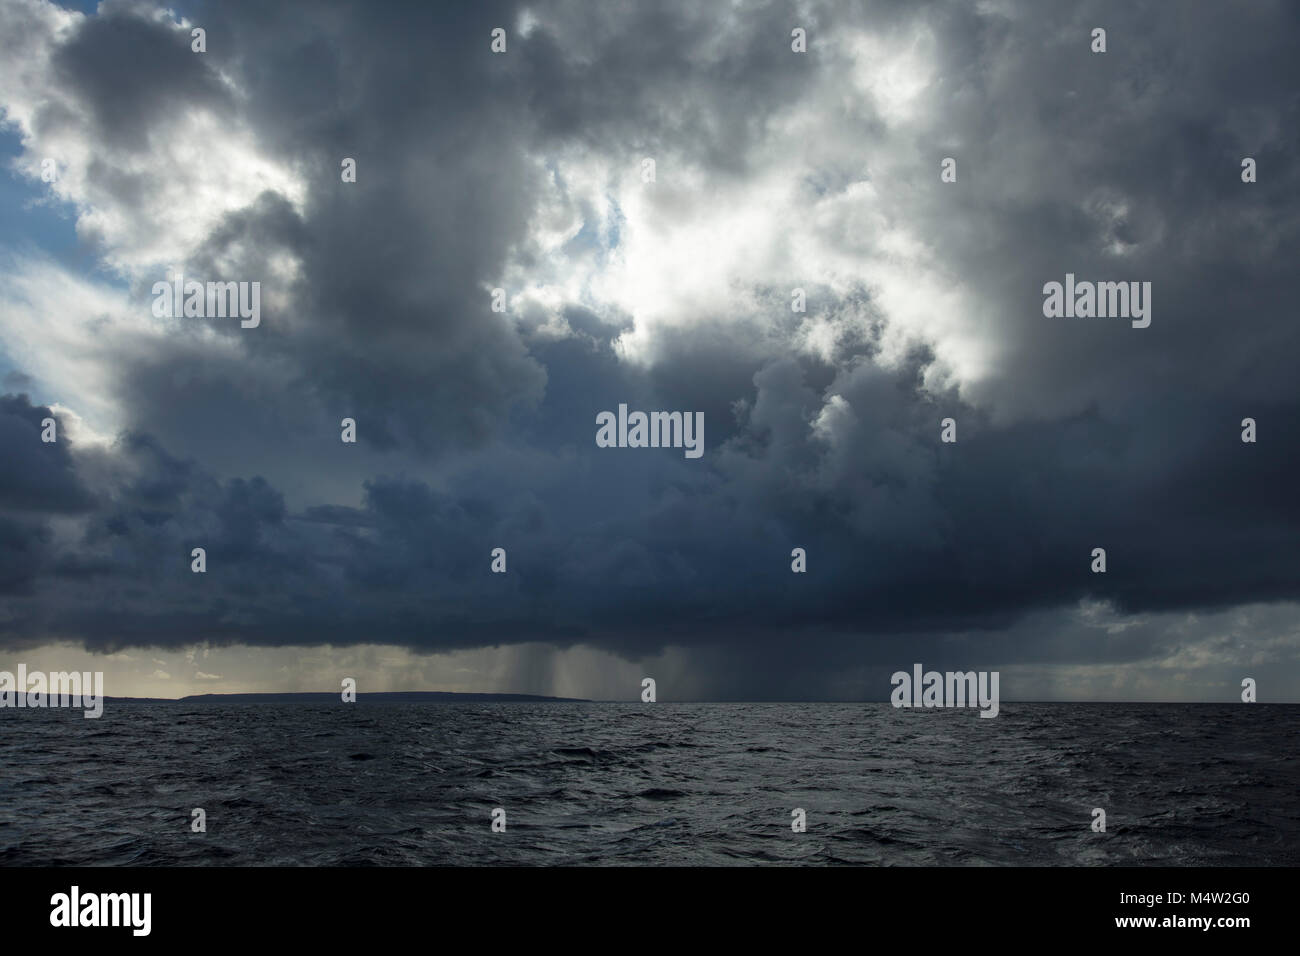 Atlantic storm brewing in Galway Bay, County Galway, Ireland. - Stock Image